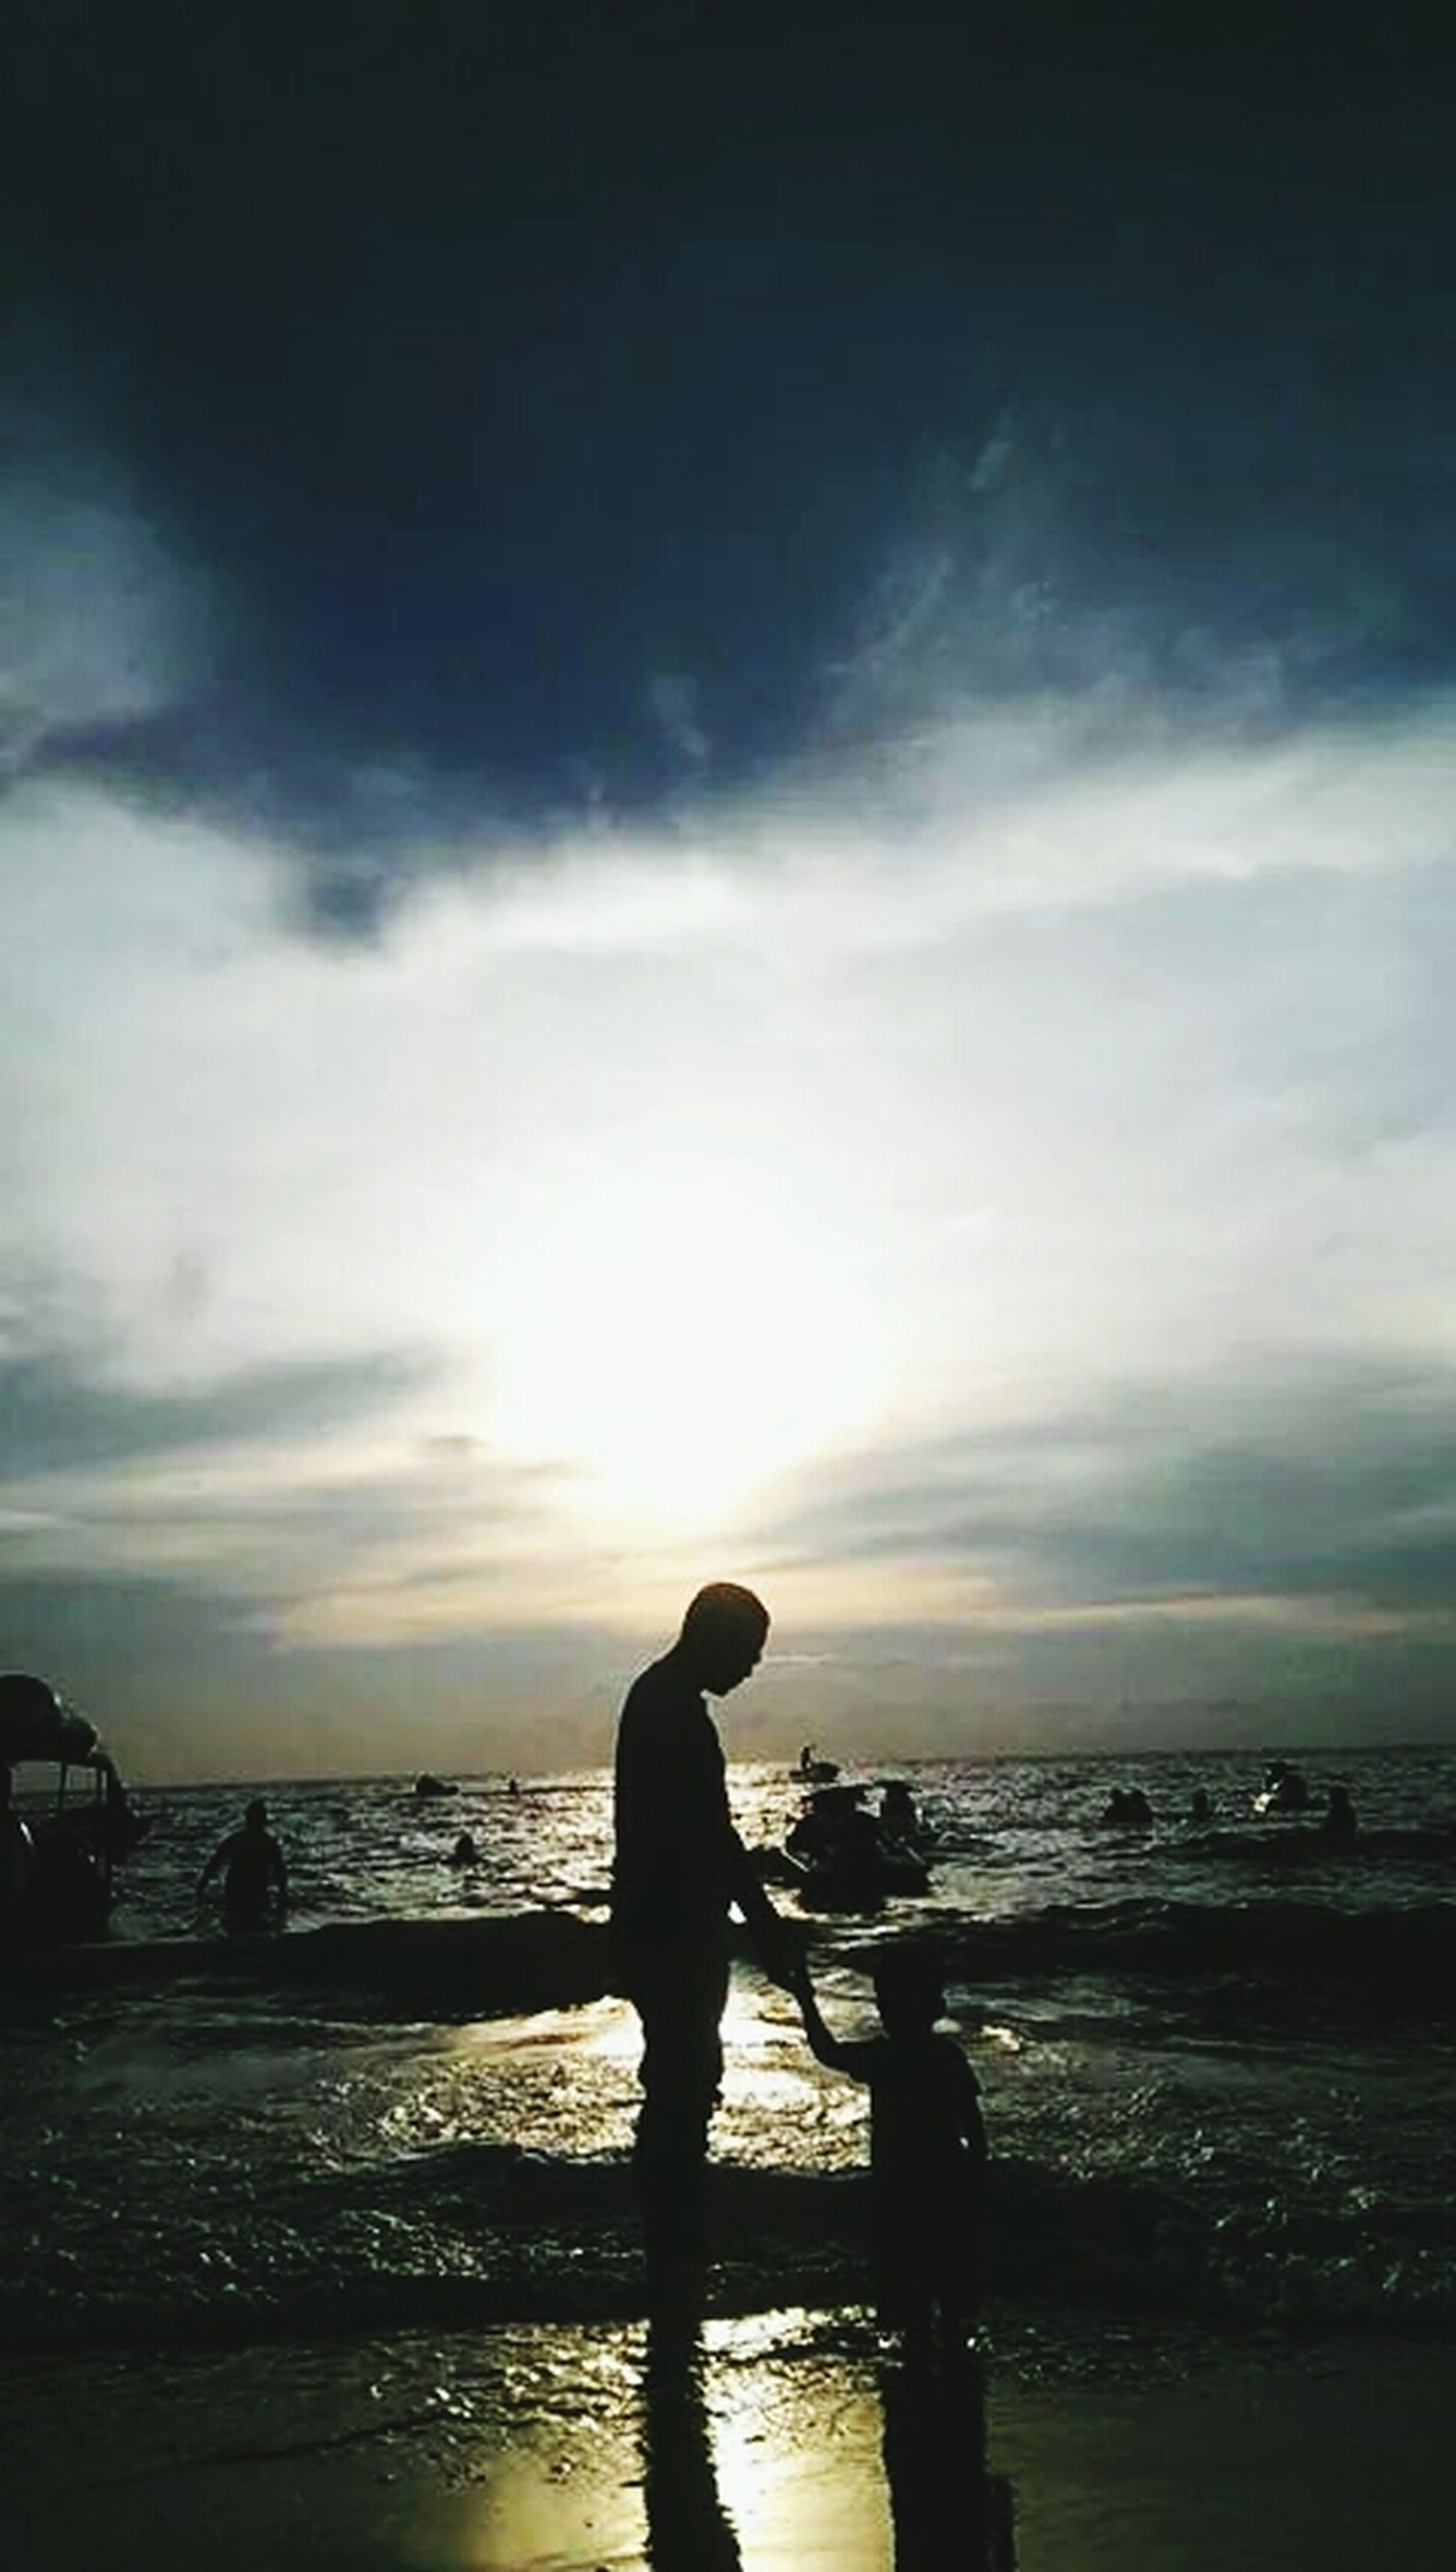 sea, silhouette, water, sunset, horizon over water, sky, beach, scenics, tranquil scene, standing, beauty in nature, shore, tranquility, lifestyles, leisure activity, cloud - sky, sun, nature